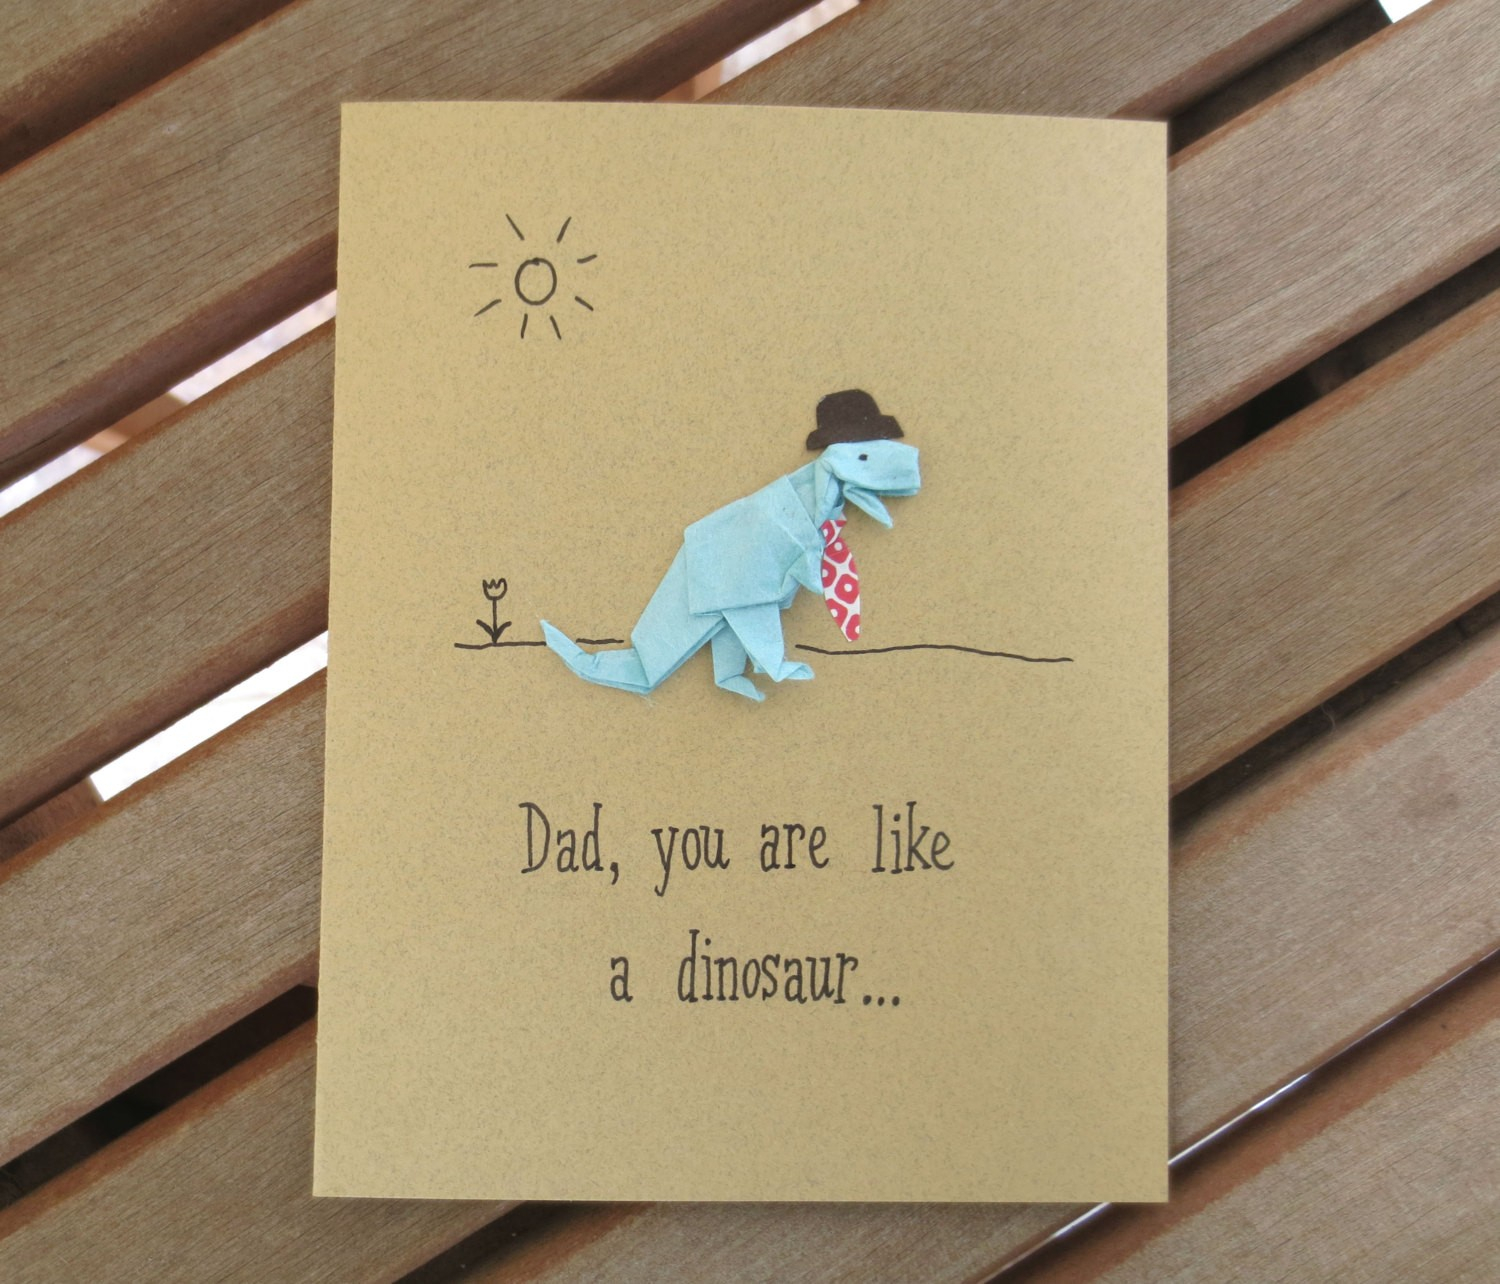 Ideas For Birthday Cards For Dads 100 Cool Birthday Cards For Dad Funny Birthday Card For Dad Him